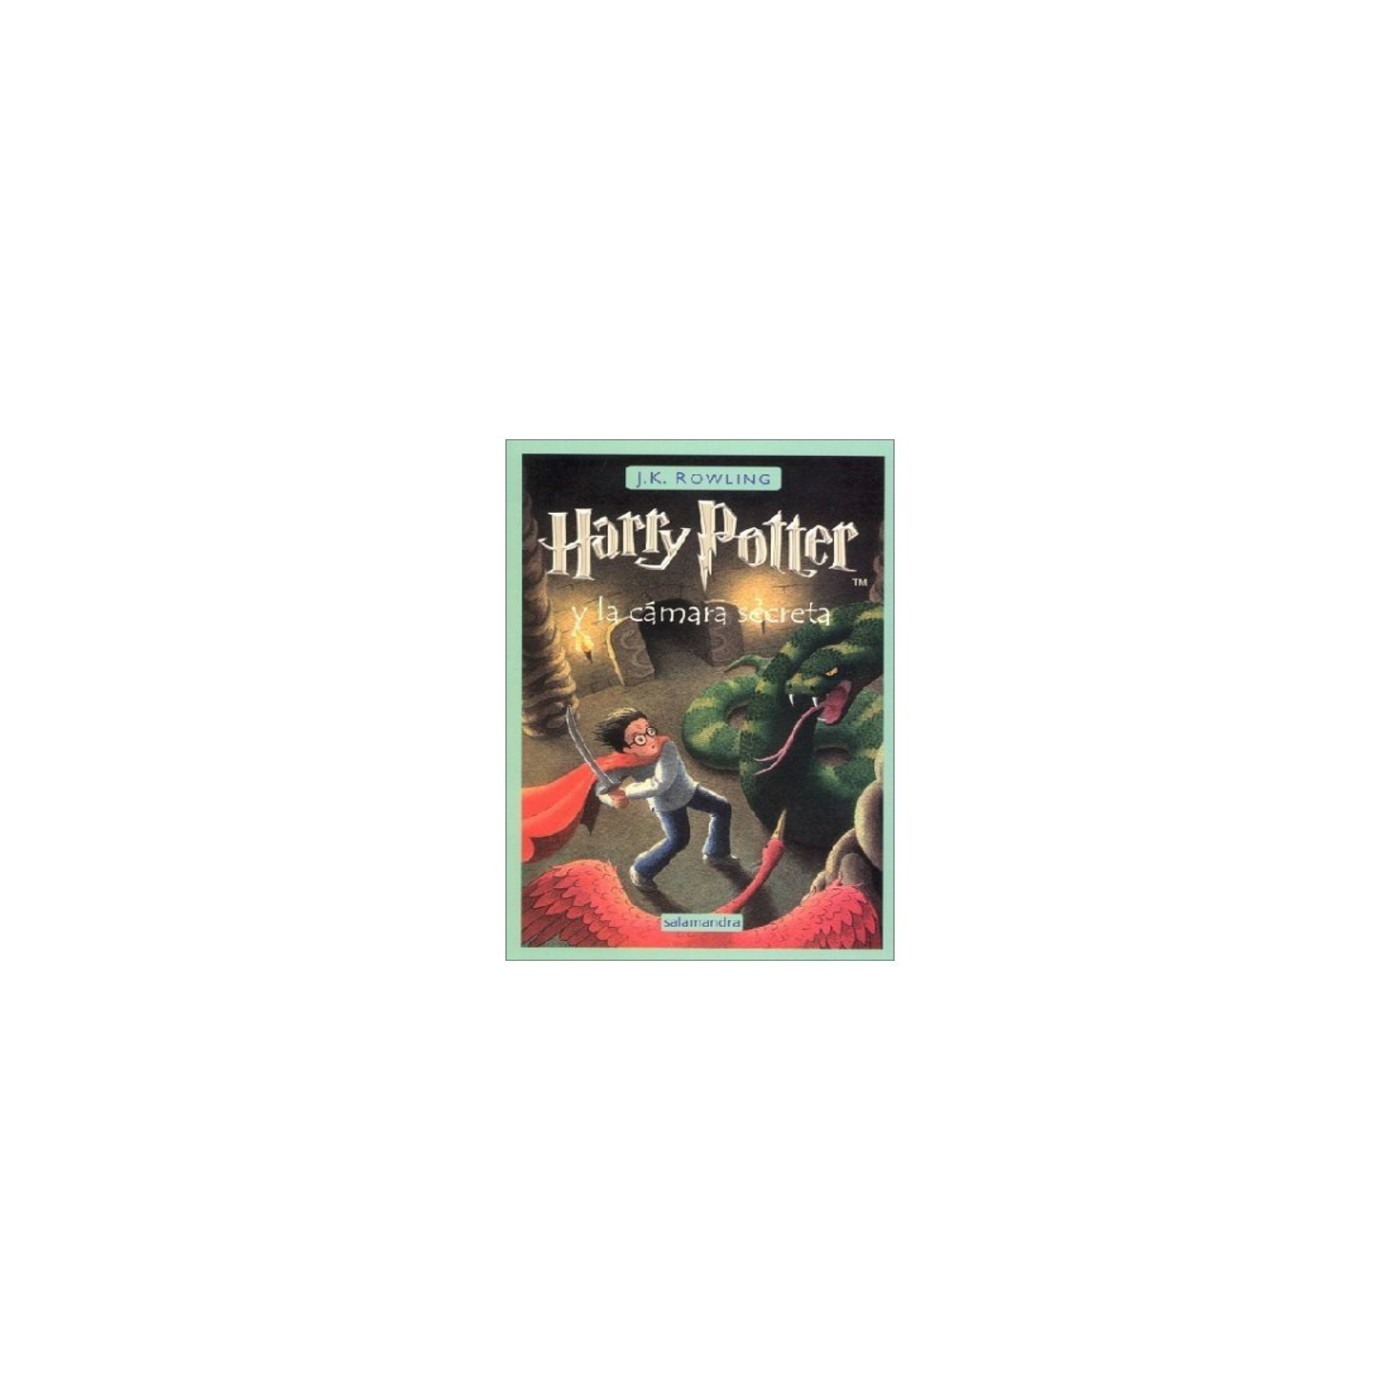 Segundo Libro De Harry Potter 03 Harry Potter Y La Camara Secreta En Harry Potter Y La